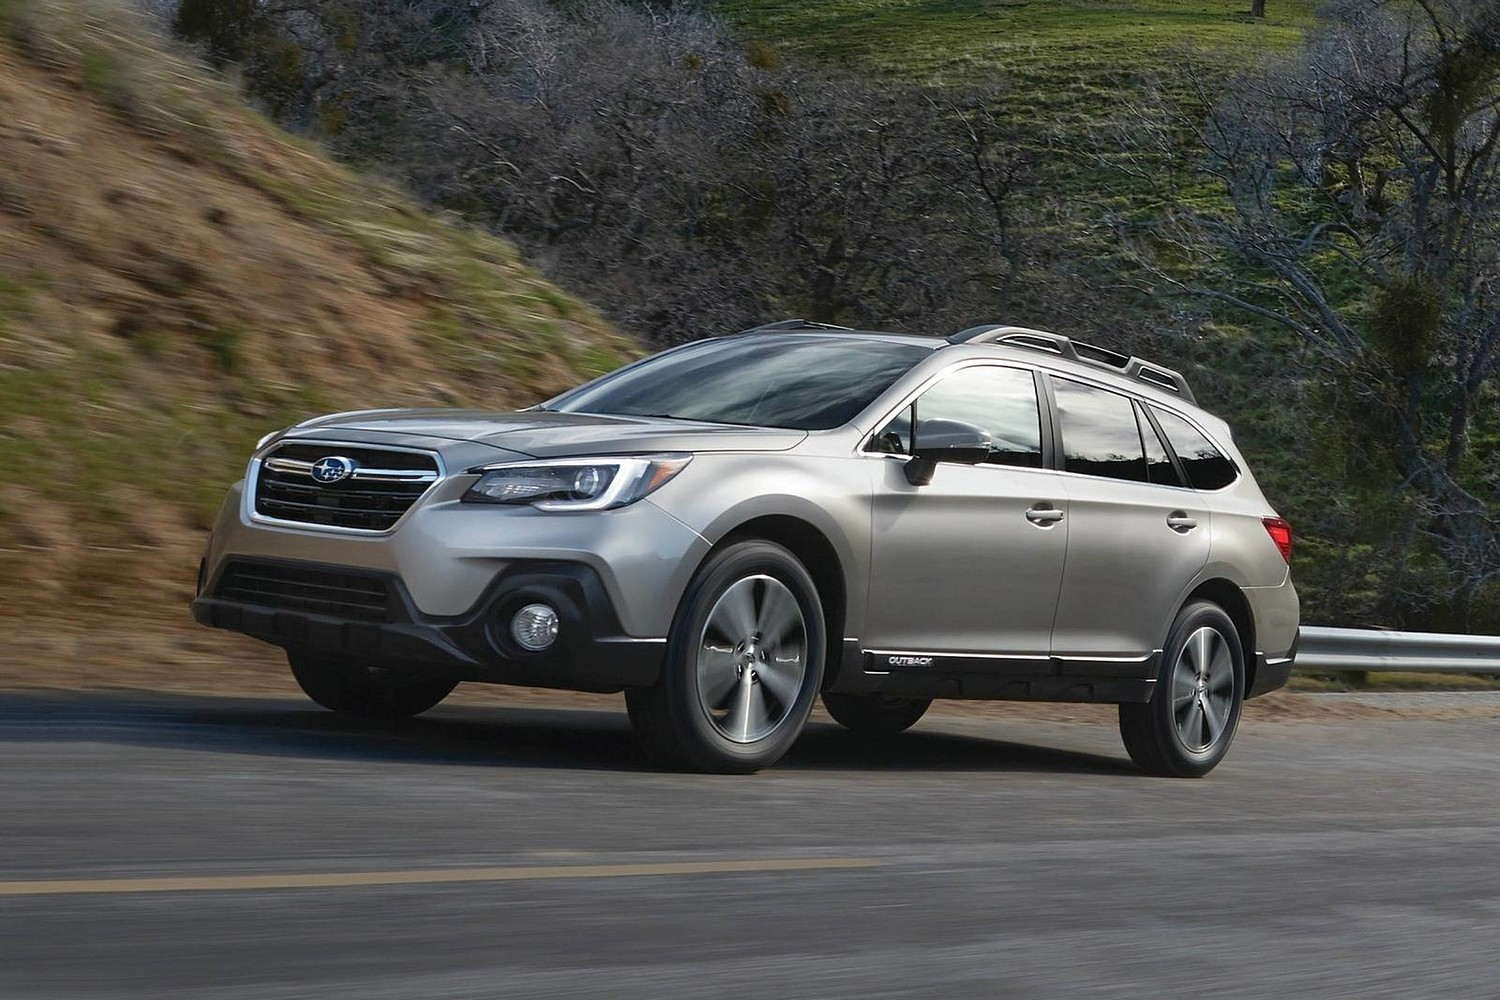 2018 Subaru Outback 3.6R Limited 4dr SUV Exterior Shown